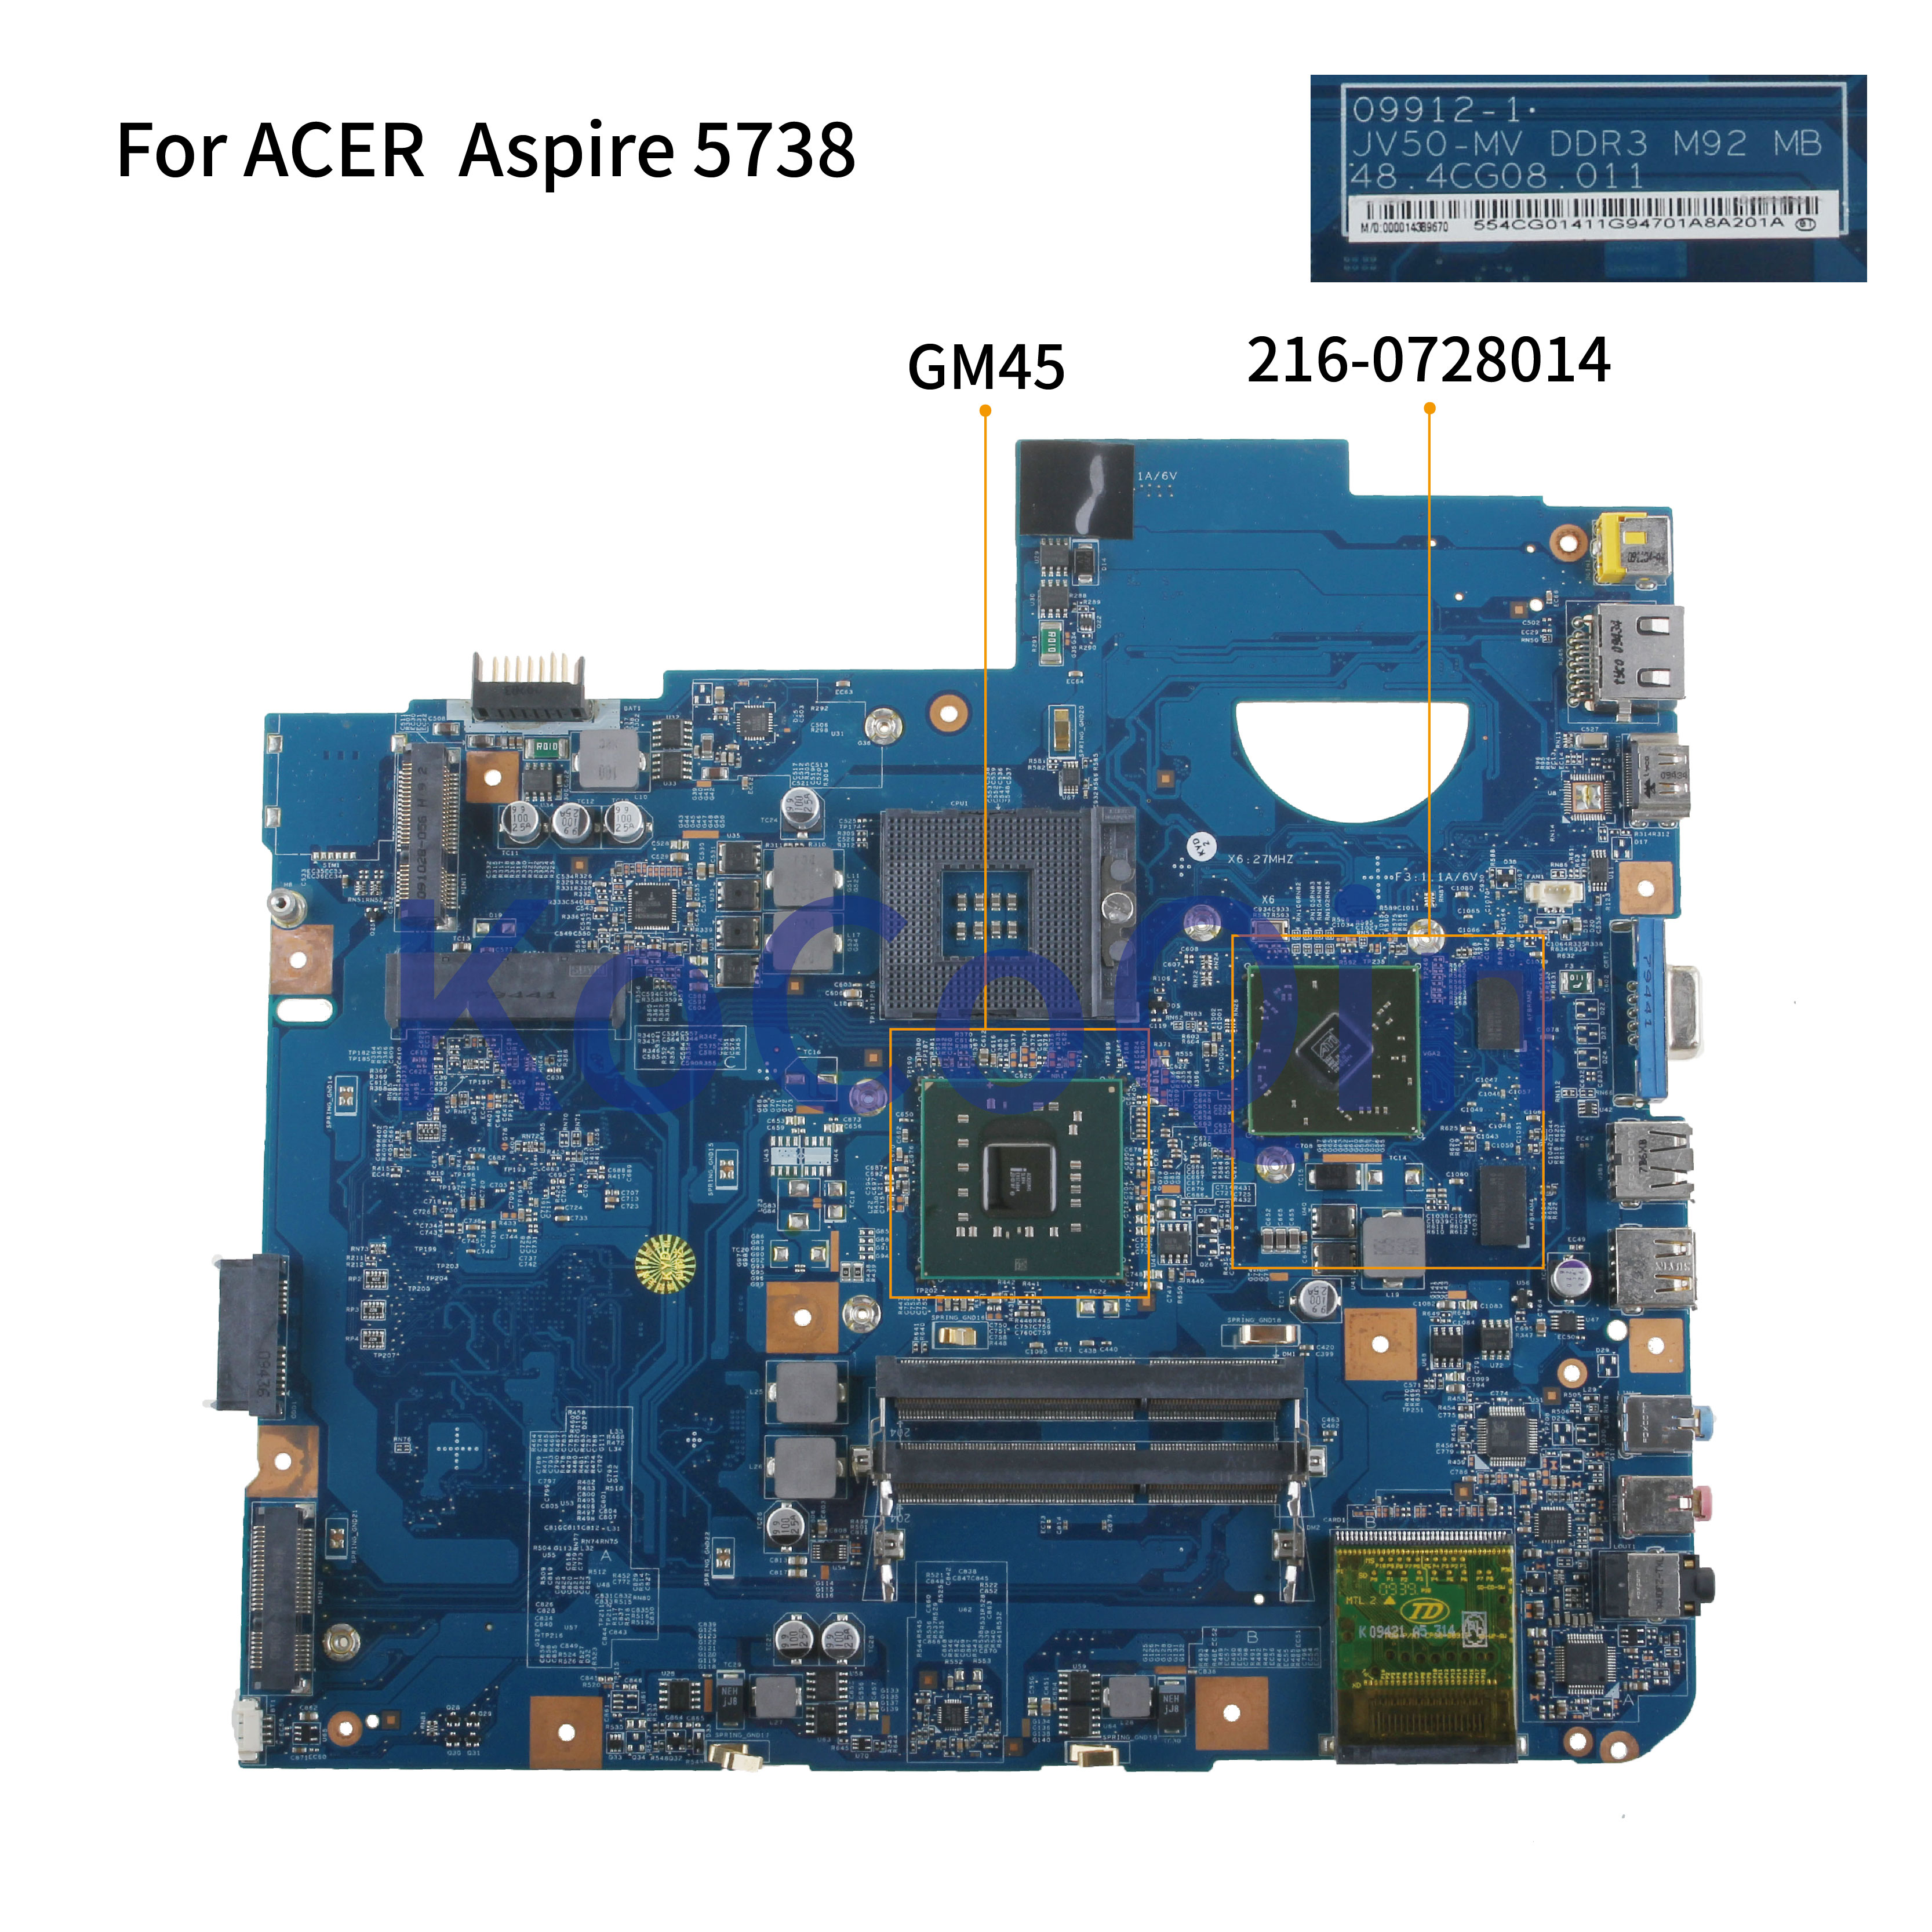 KoCoQin Laptop Motherboard For ACER  Aspire 5738 5738G DDR3 Mainboard MBP5601019 MB.P5601.019 09912-1 48.4CG08.011 GM45